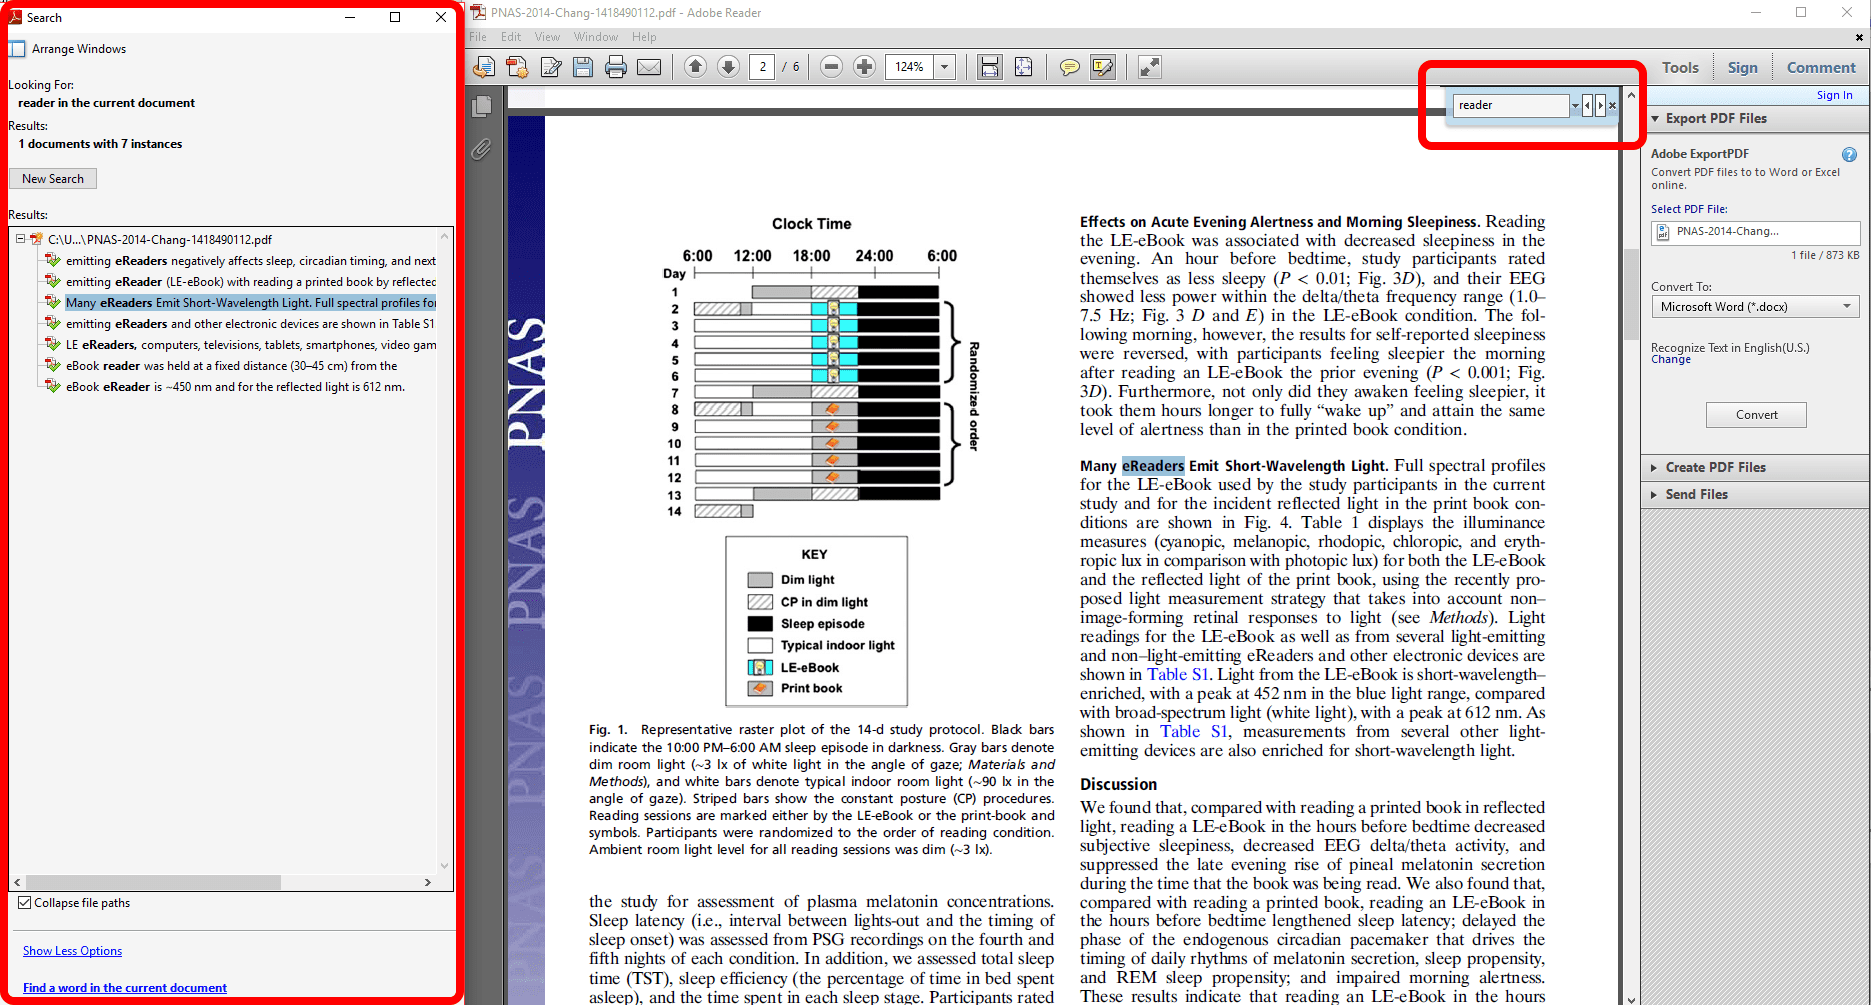 Adobe Reader with the search box highlighted